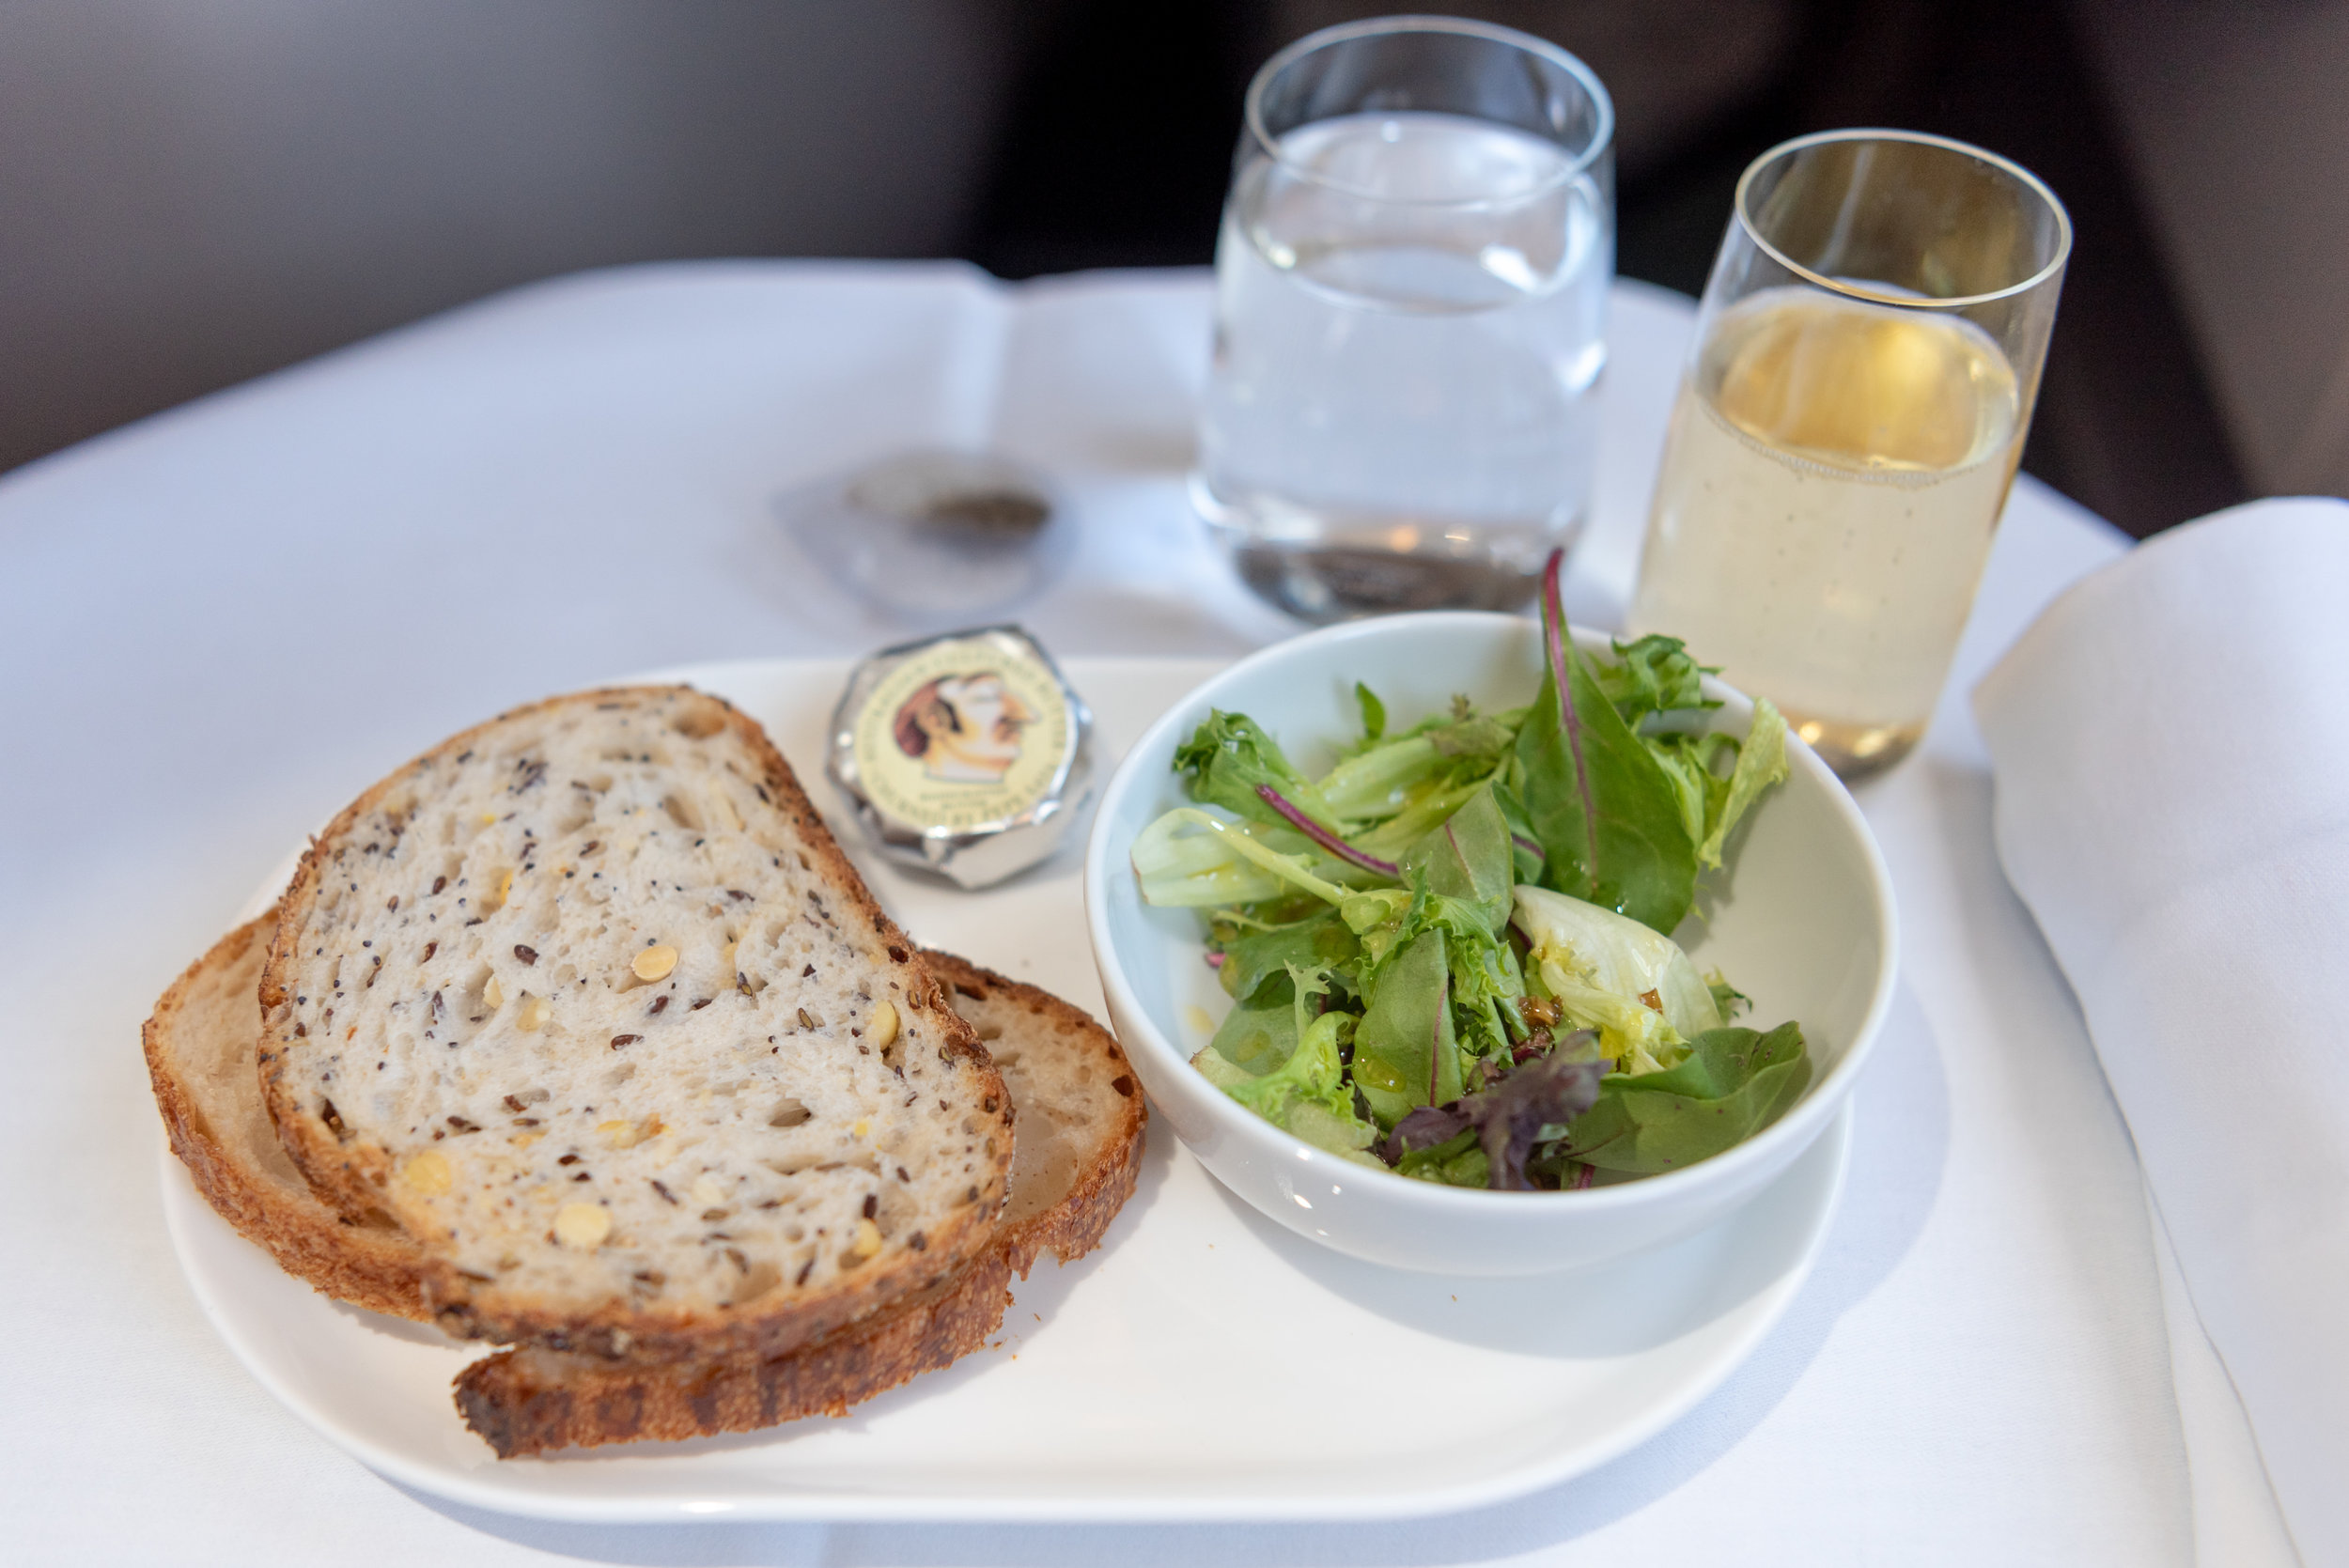 Bread and Side Salad  Qantas Business Class QF37 A330-300 - MEL to SIN